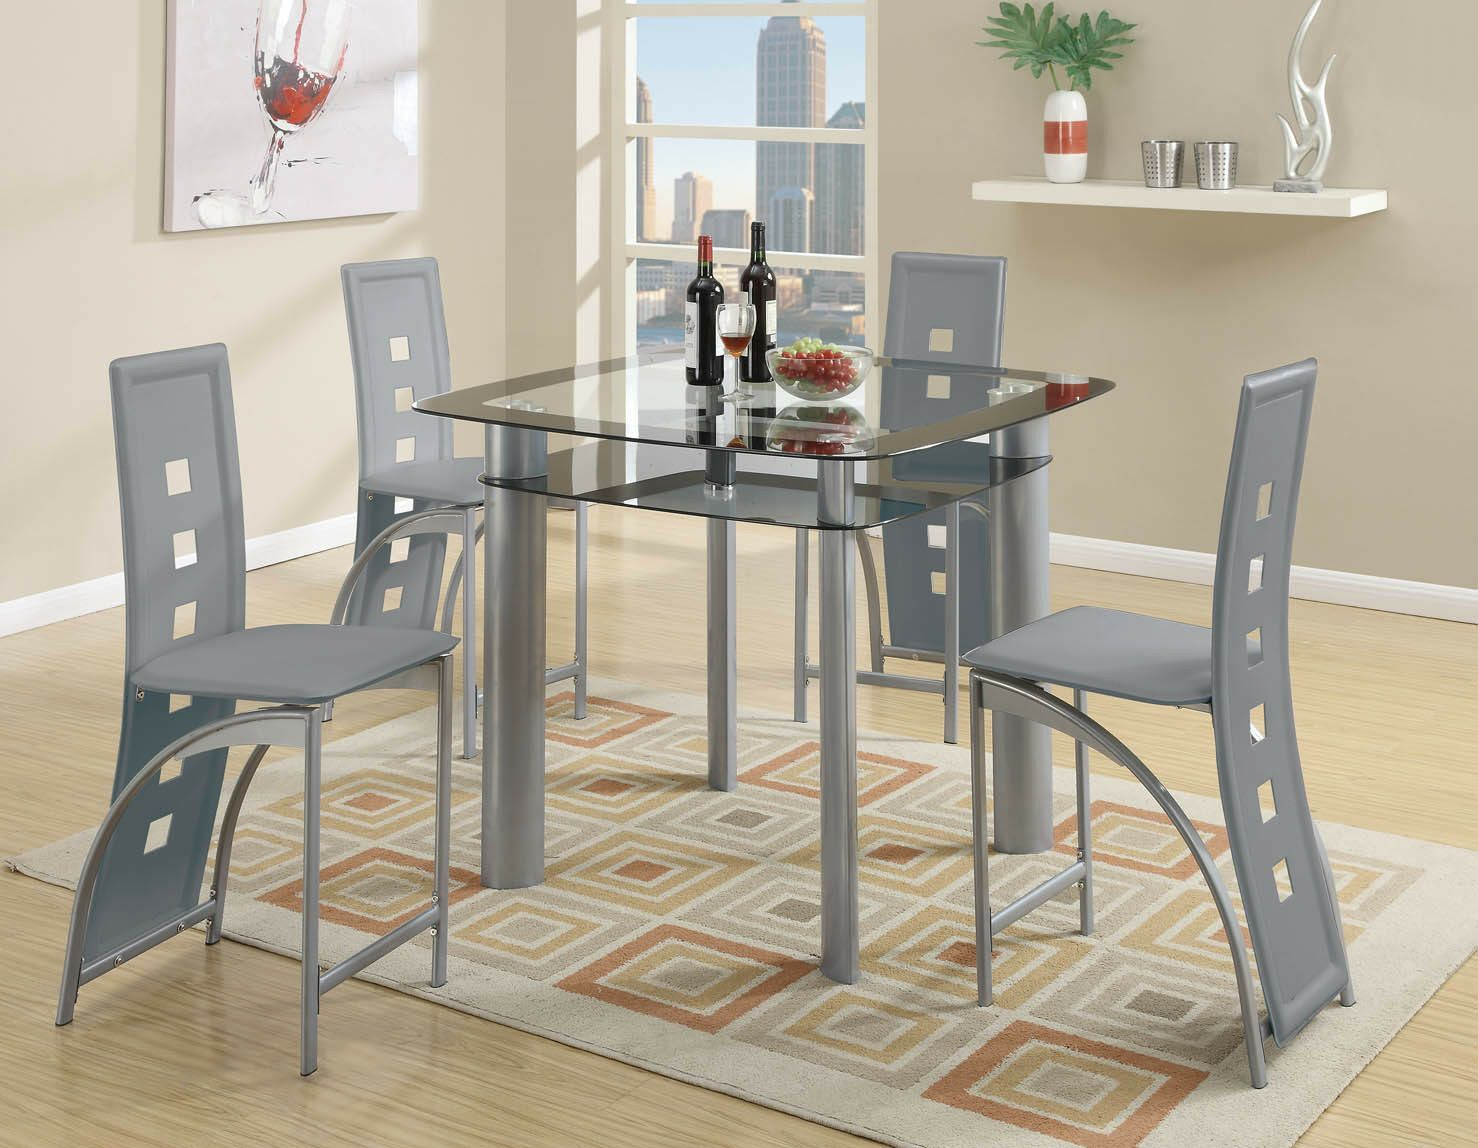 Https Ift Tt 2wi1dfx Dining Table Ideas Of Dining Table Diningtable Table Dining Mod Dining Table Dining Table Setting Counter Height Dining Table